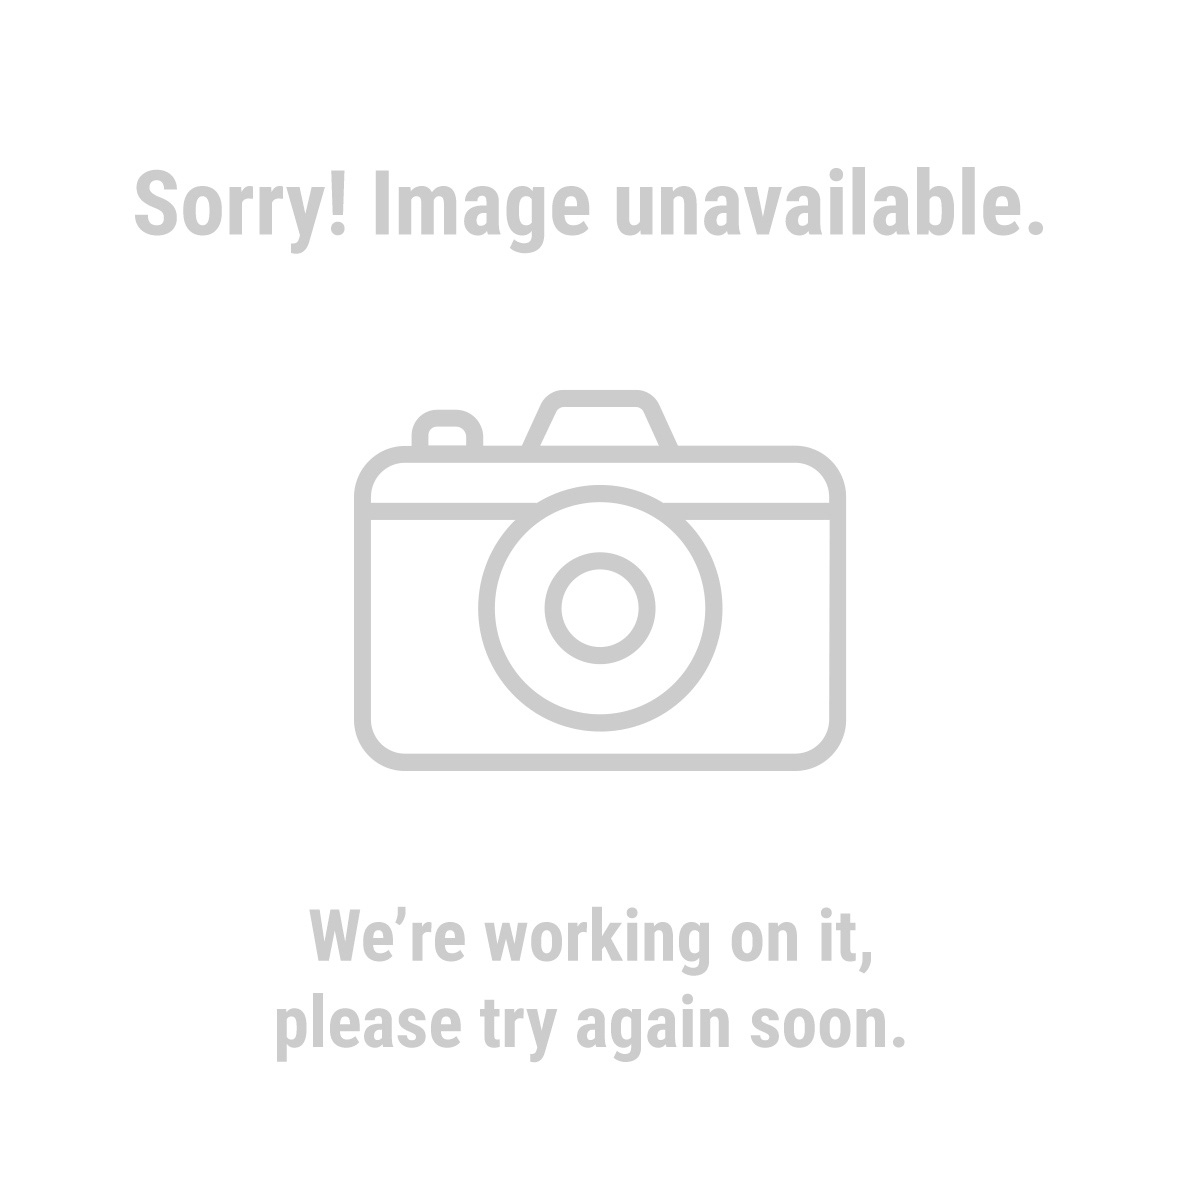 96466 3.4 Oz. Okeeffe's Working Hands Creme